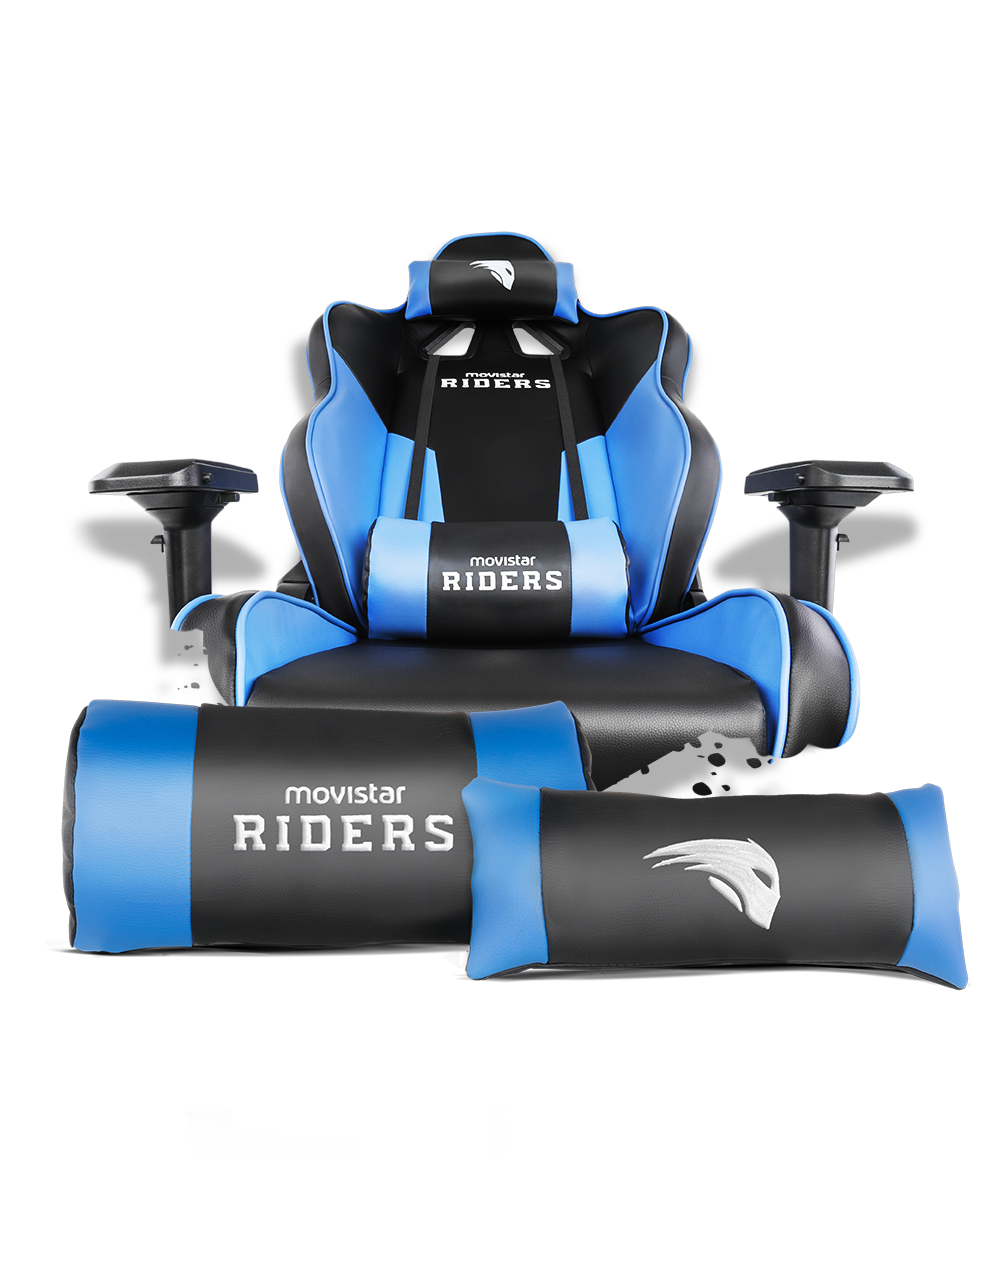 Drift Movistar Riders